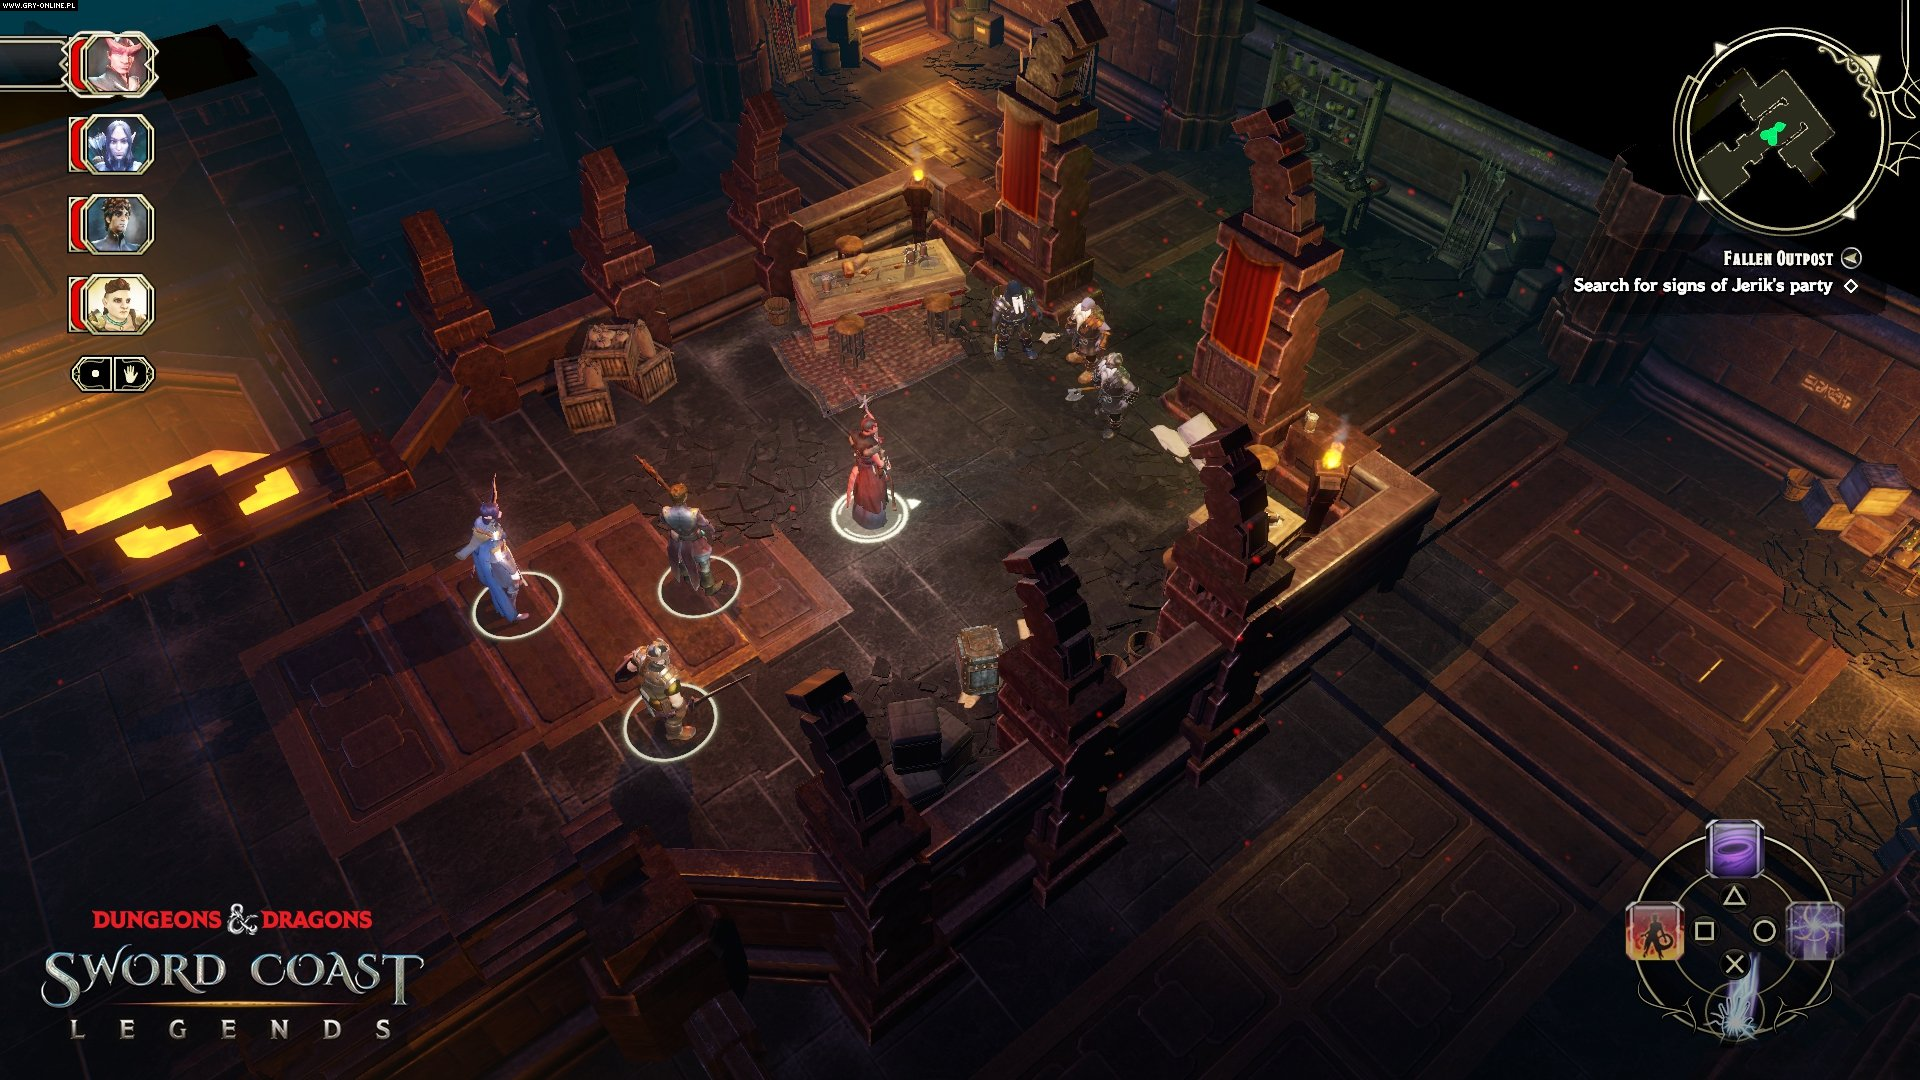 Sword Coast Legends PC, PS4, XONE Gry Screen 3/42, Digital Extremes, Wizards of the Coast